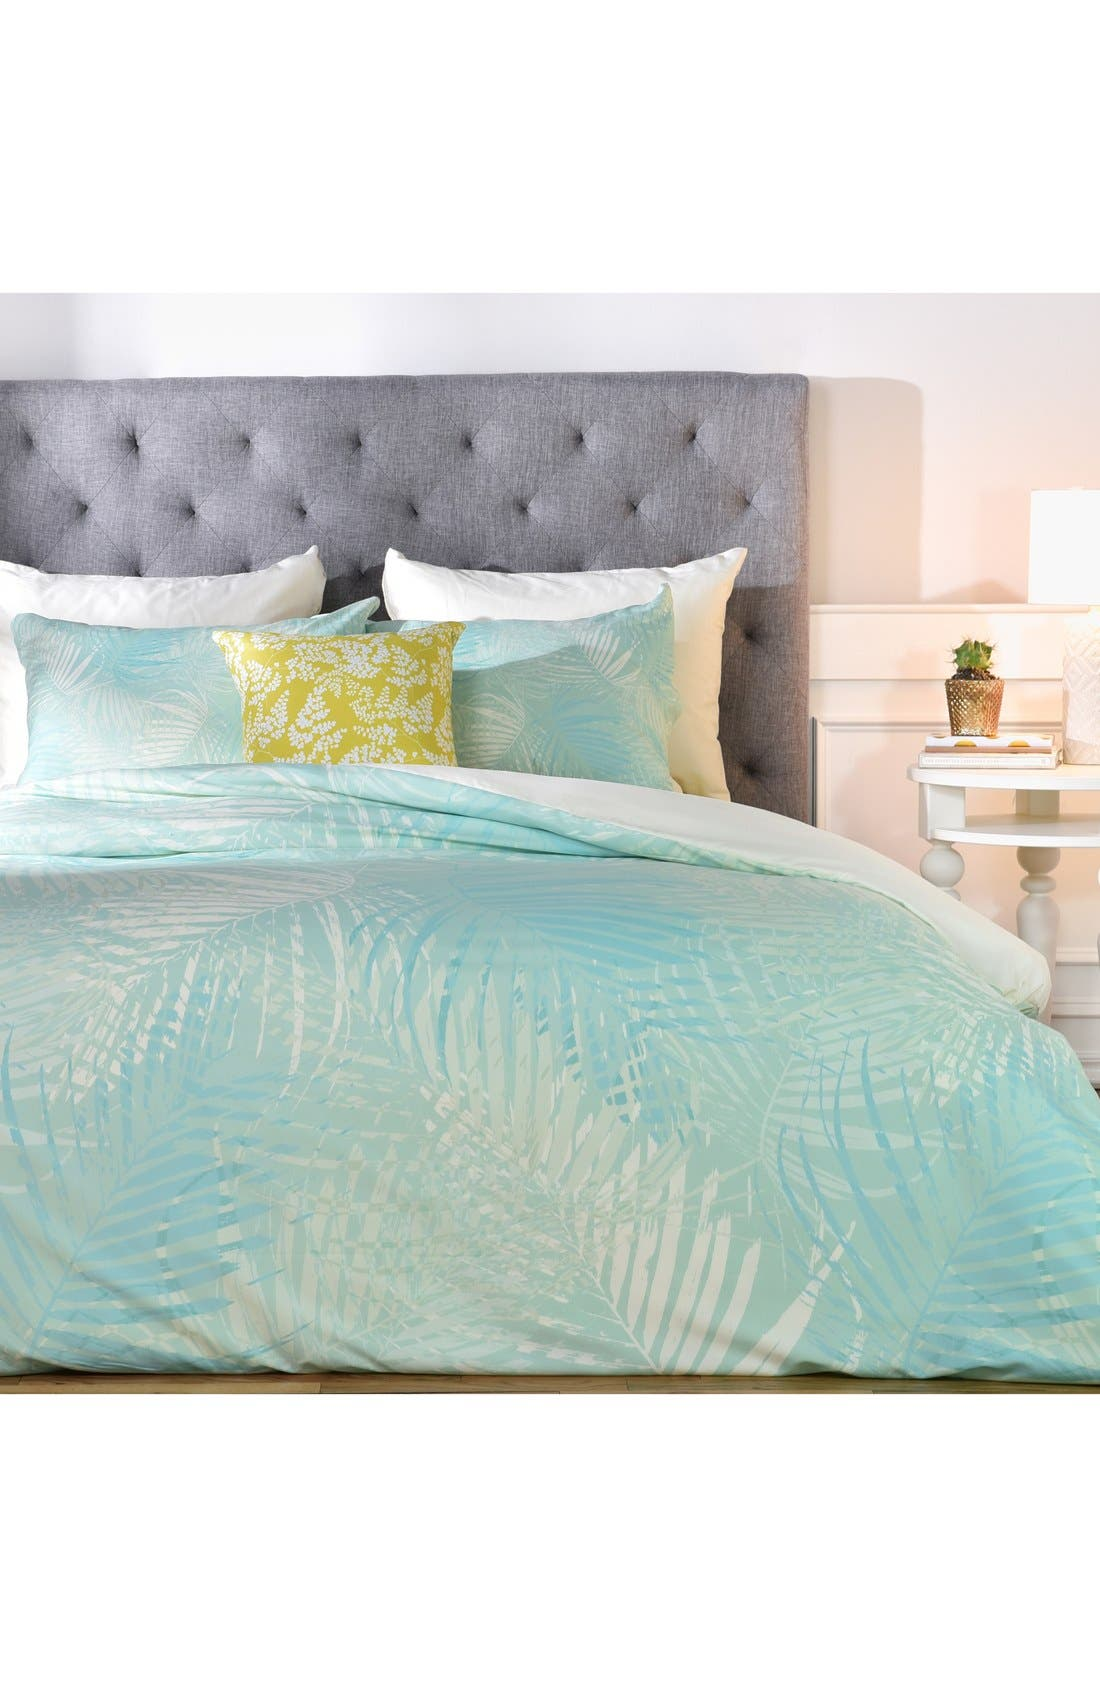 DENY DESIGNS Aimee St. Hill Pale Palm Duvet